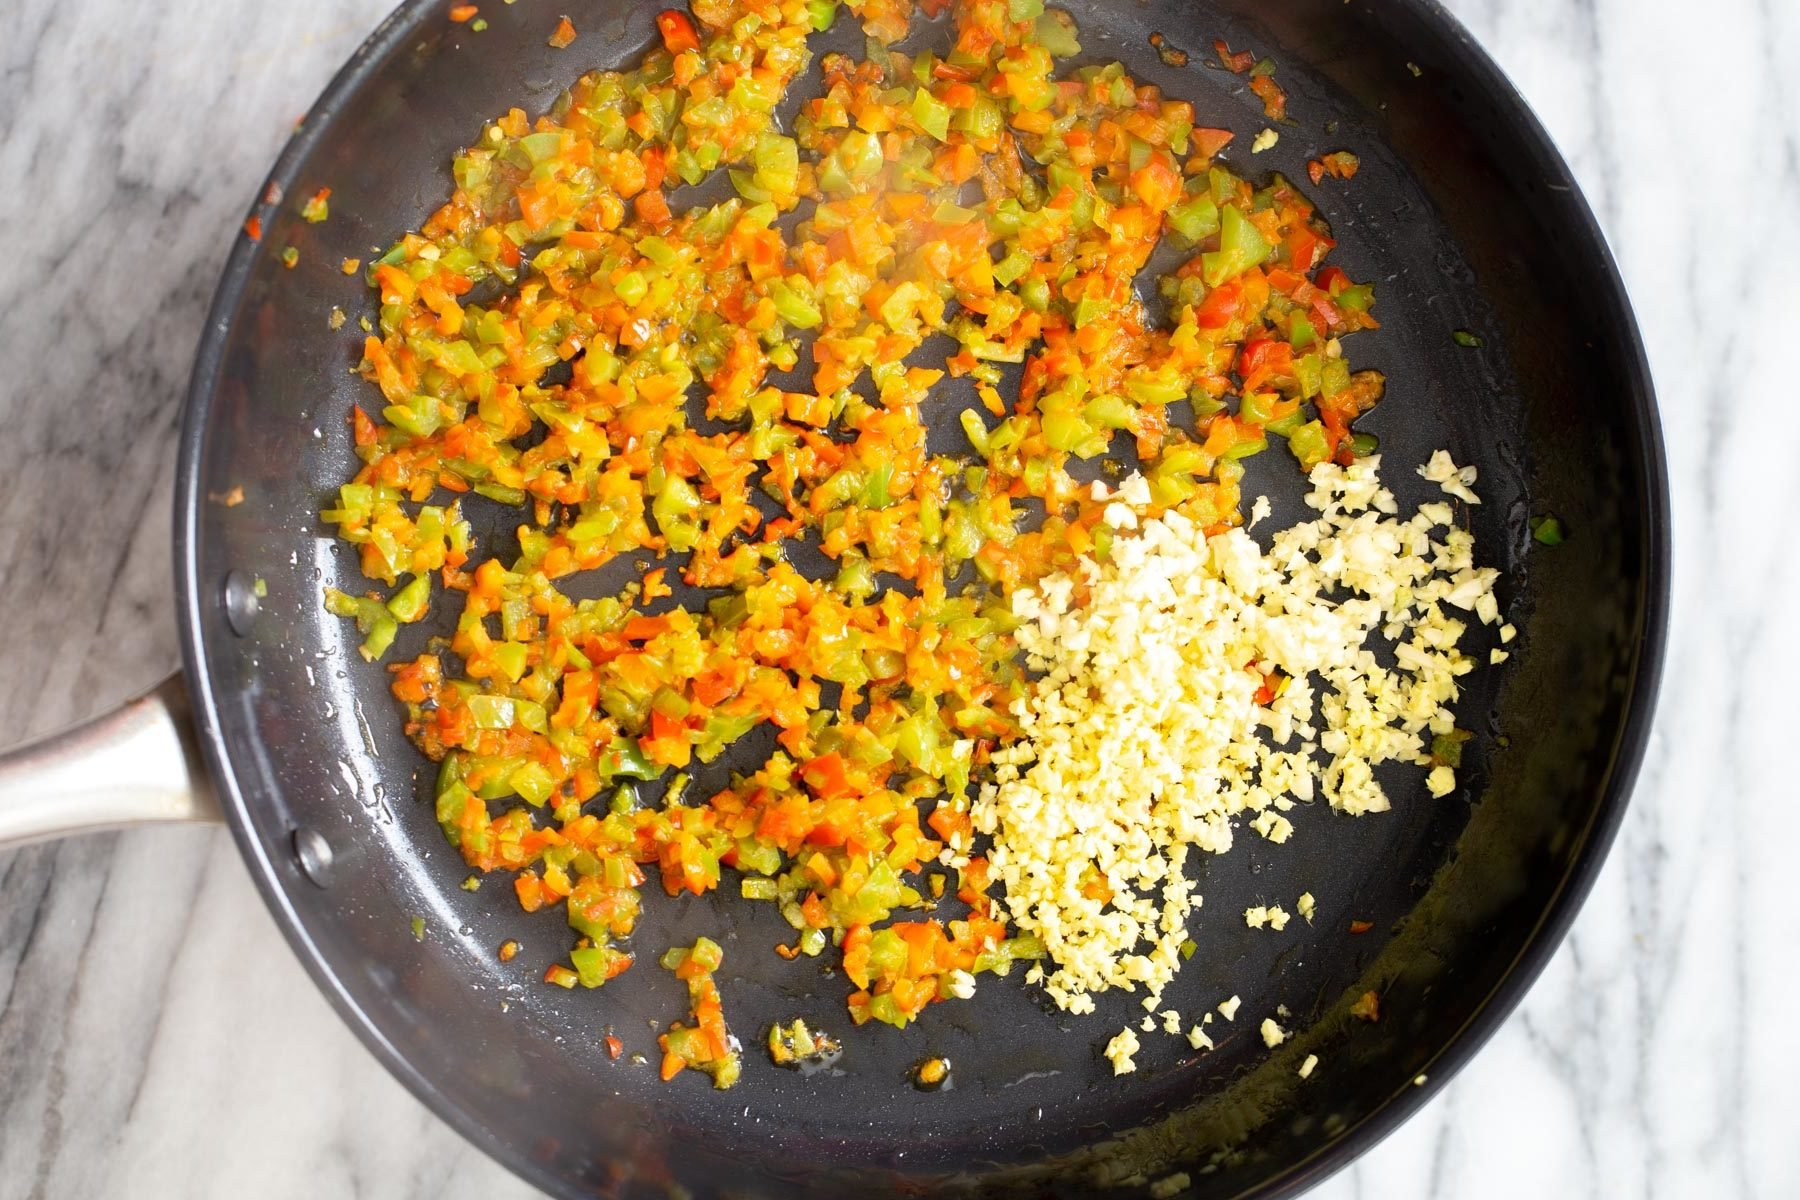 minced garlic being added to frying pan